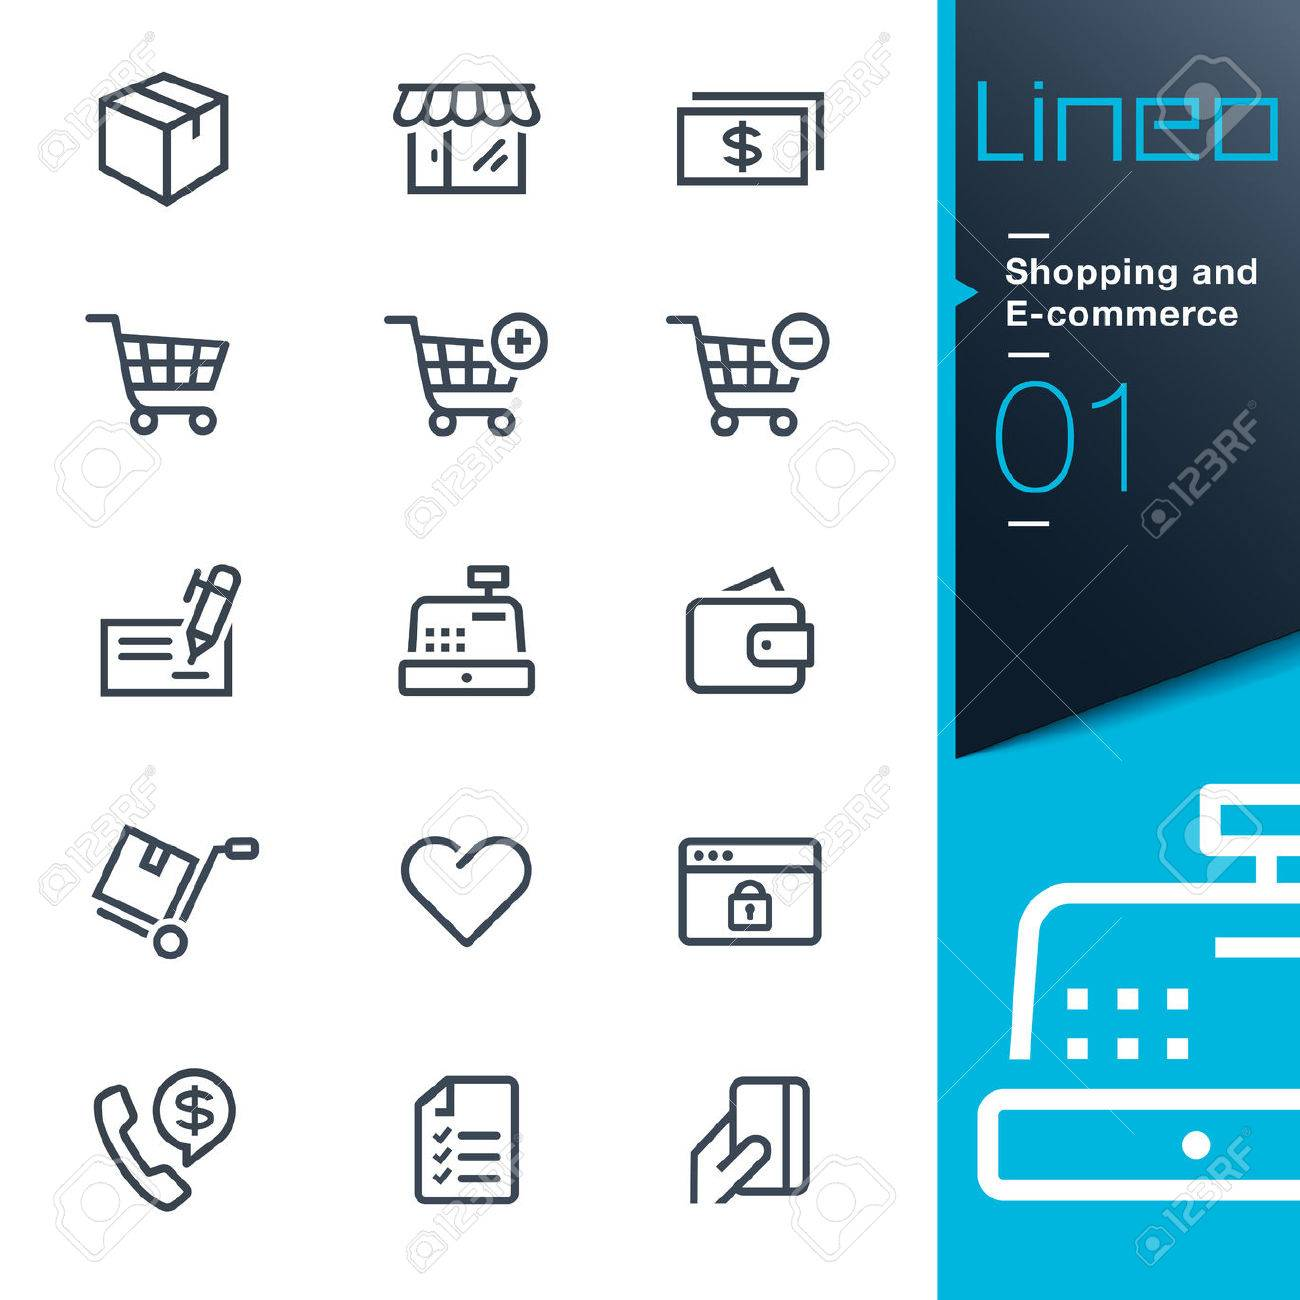 Lineo - Shopping and E-commerce outline icons Stock Vector - 26036793